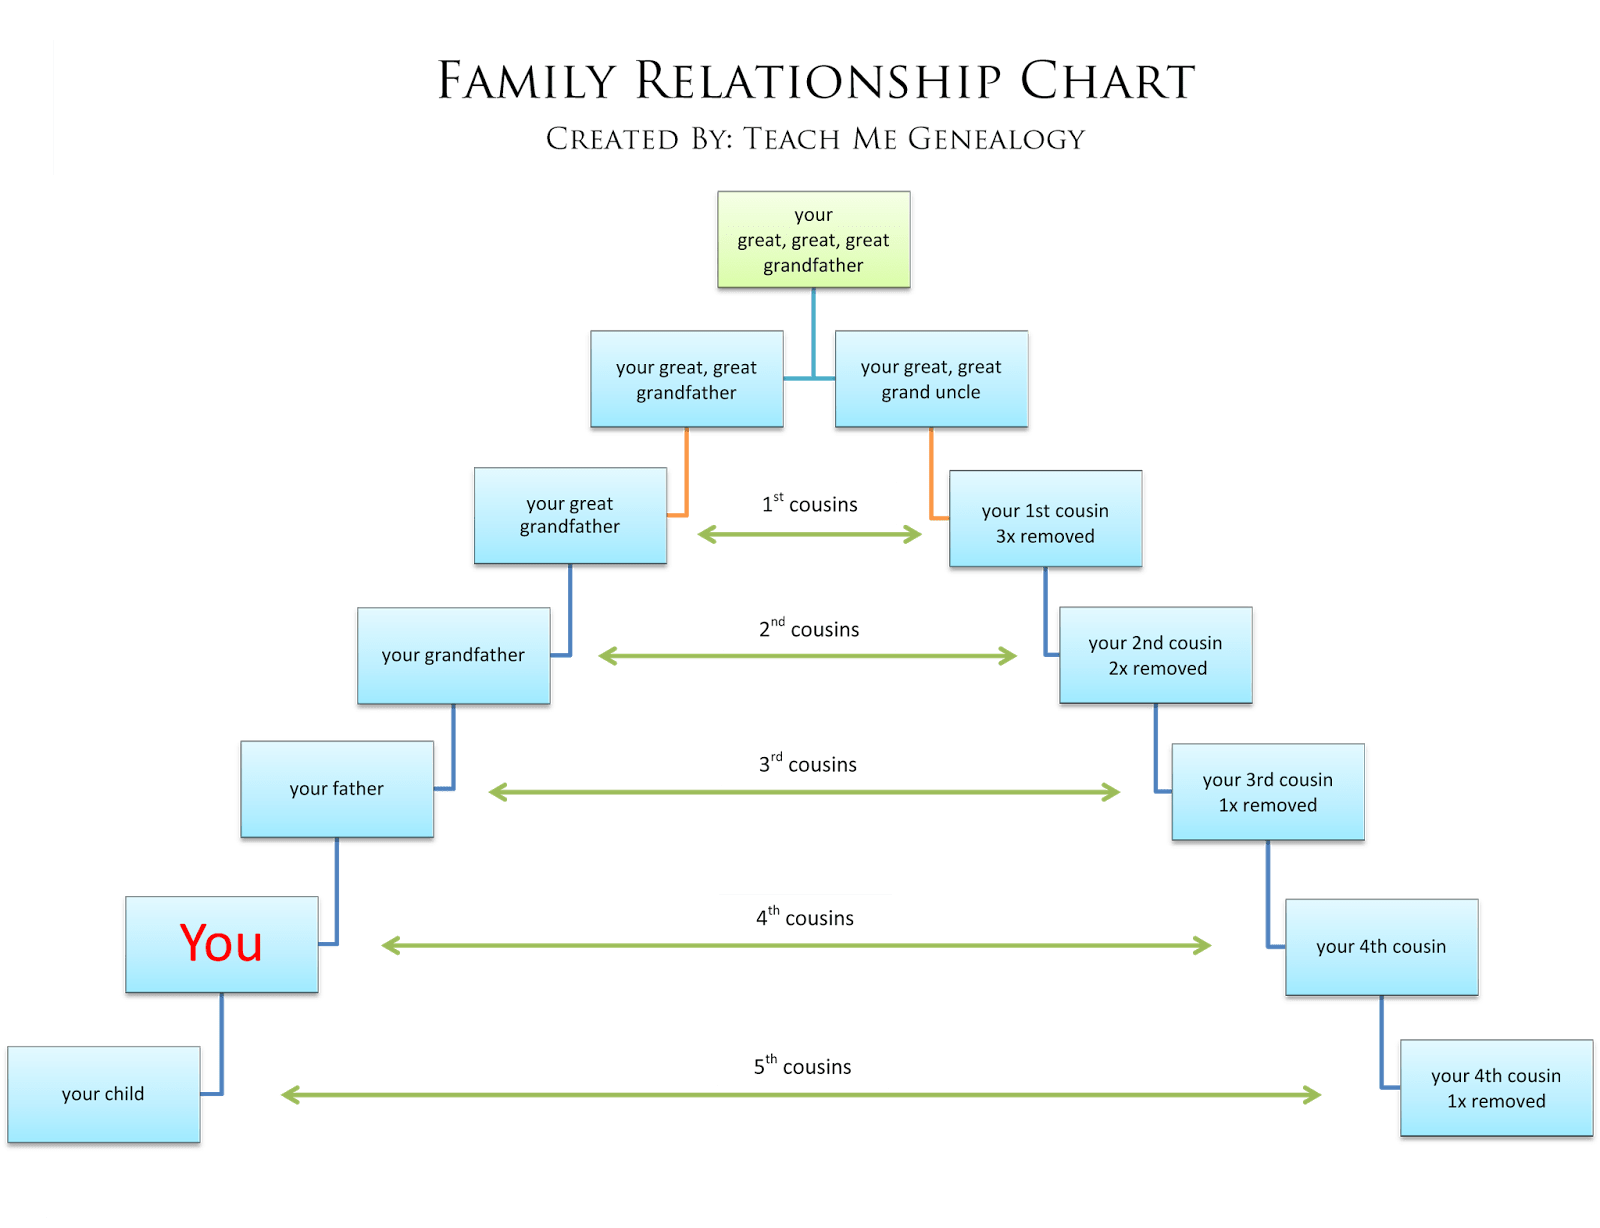 teaching tree diagram wiring for harbor breeze ceiling fan light kit 52 weeks of genealogy week 16 all about relationship